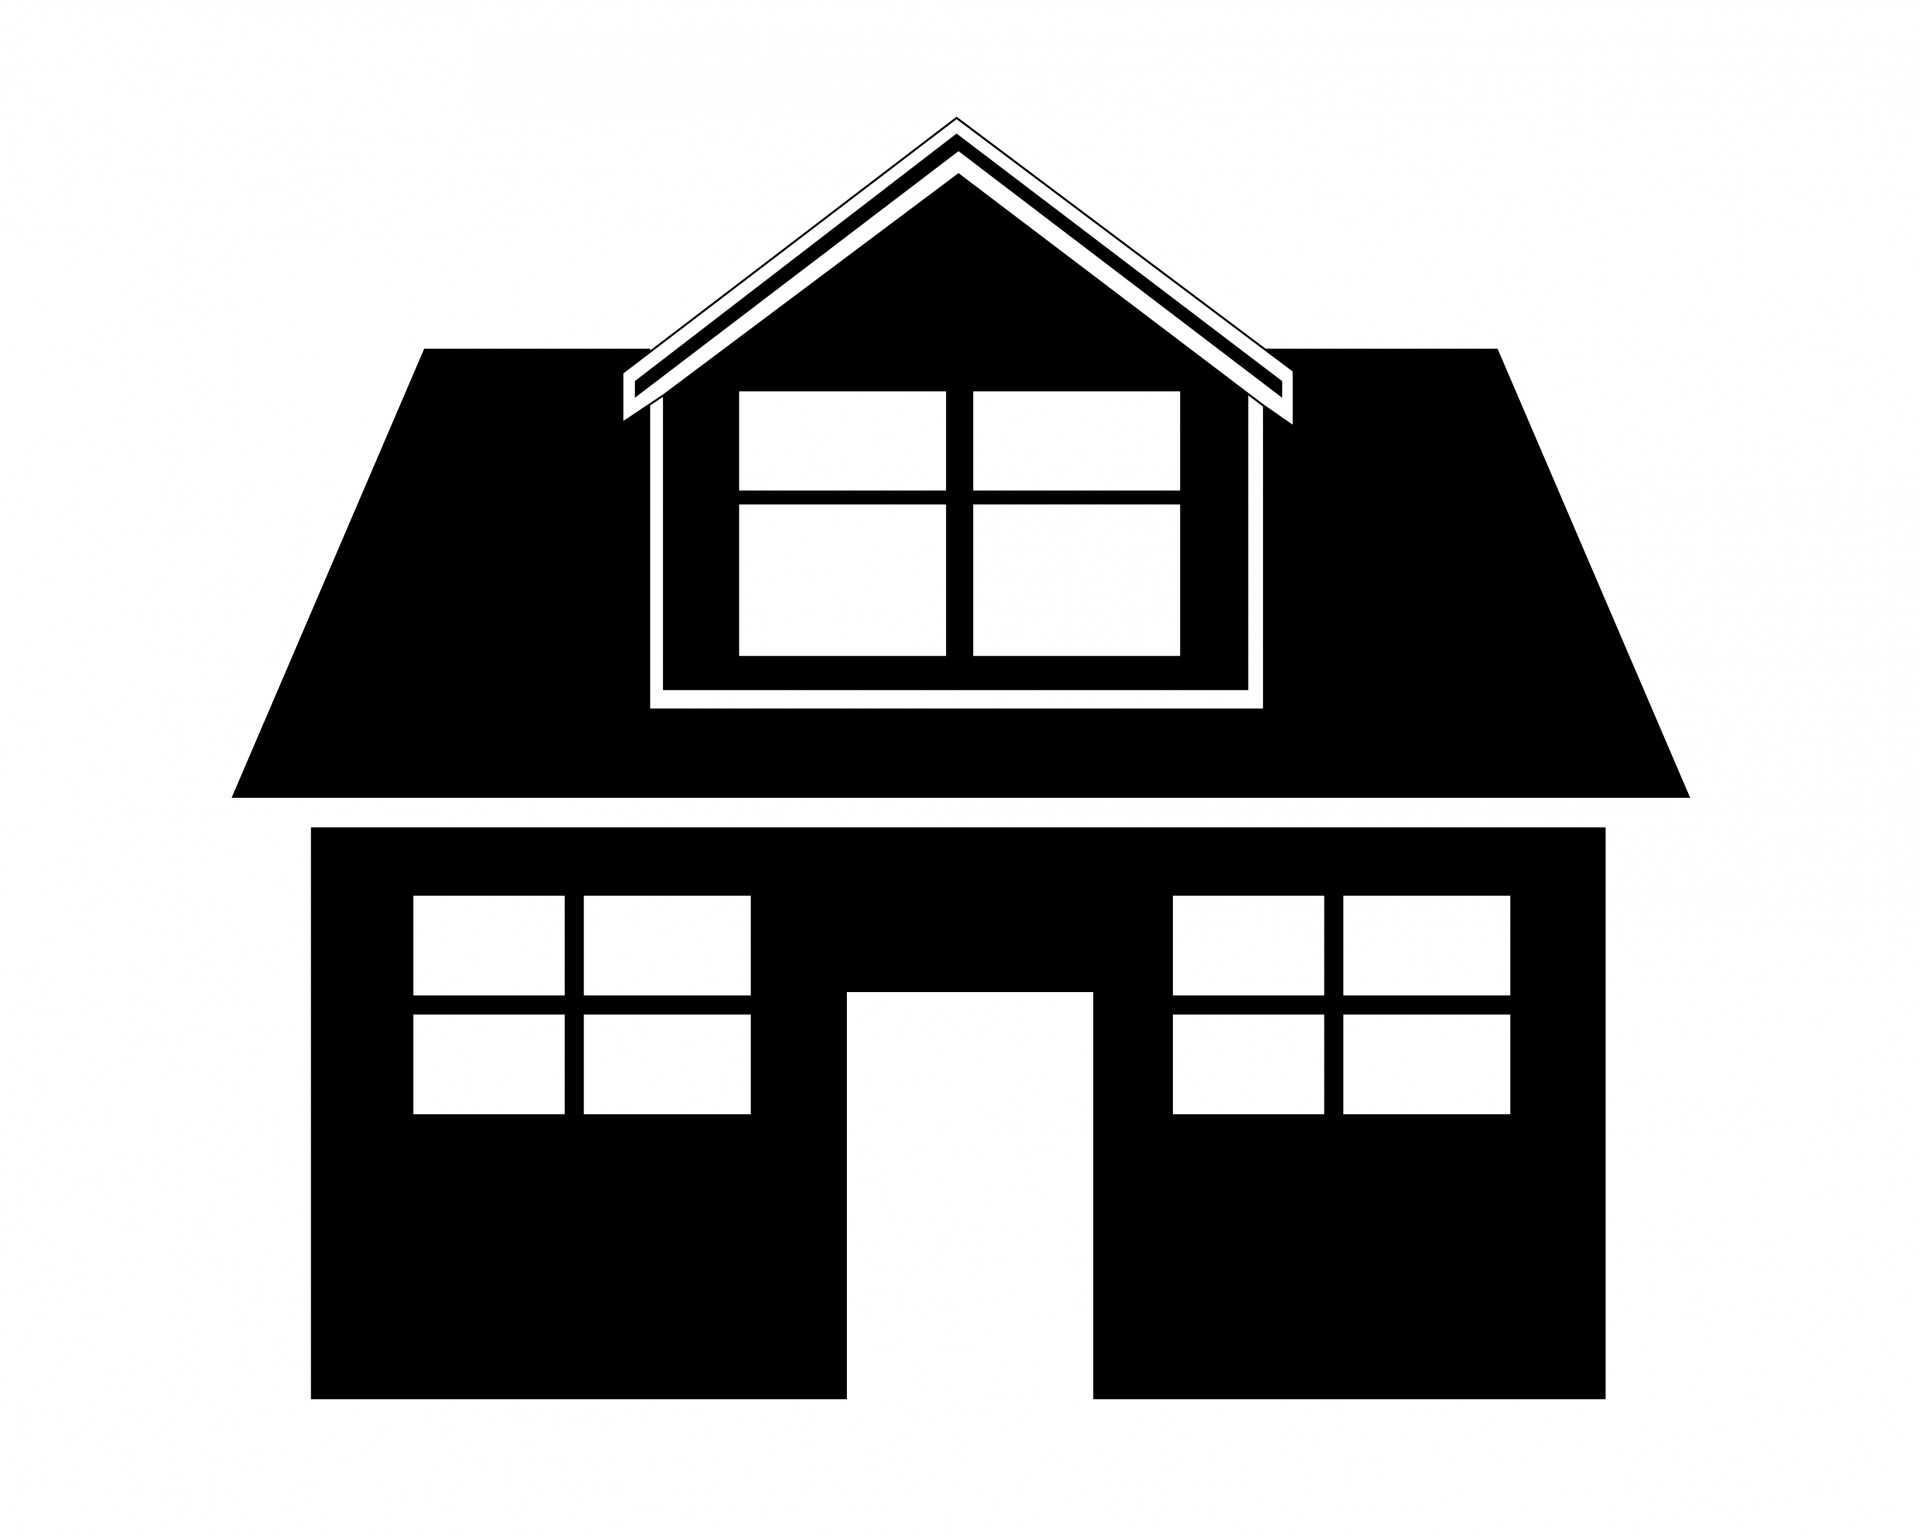 House Clipart Free Stock Photo Hd   Public Domain Pictures